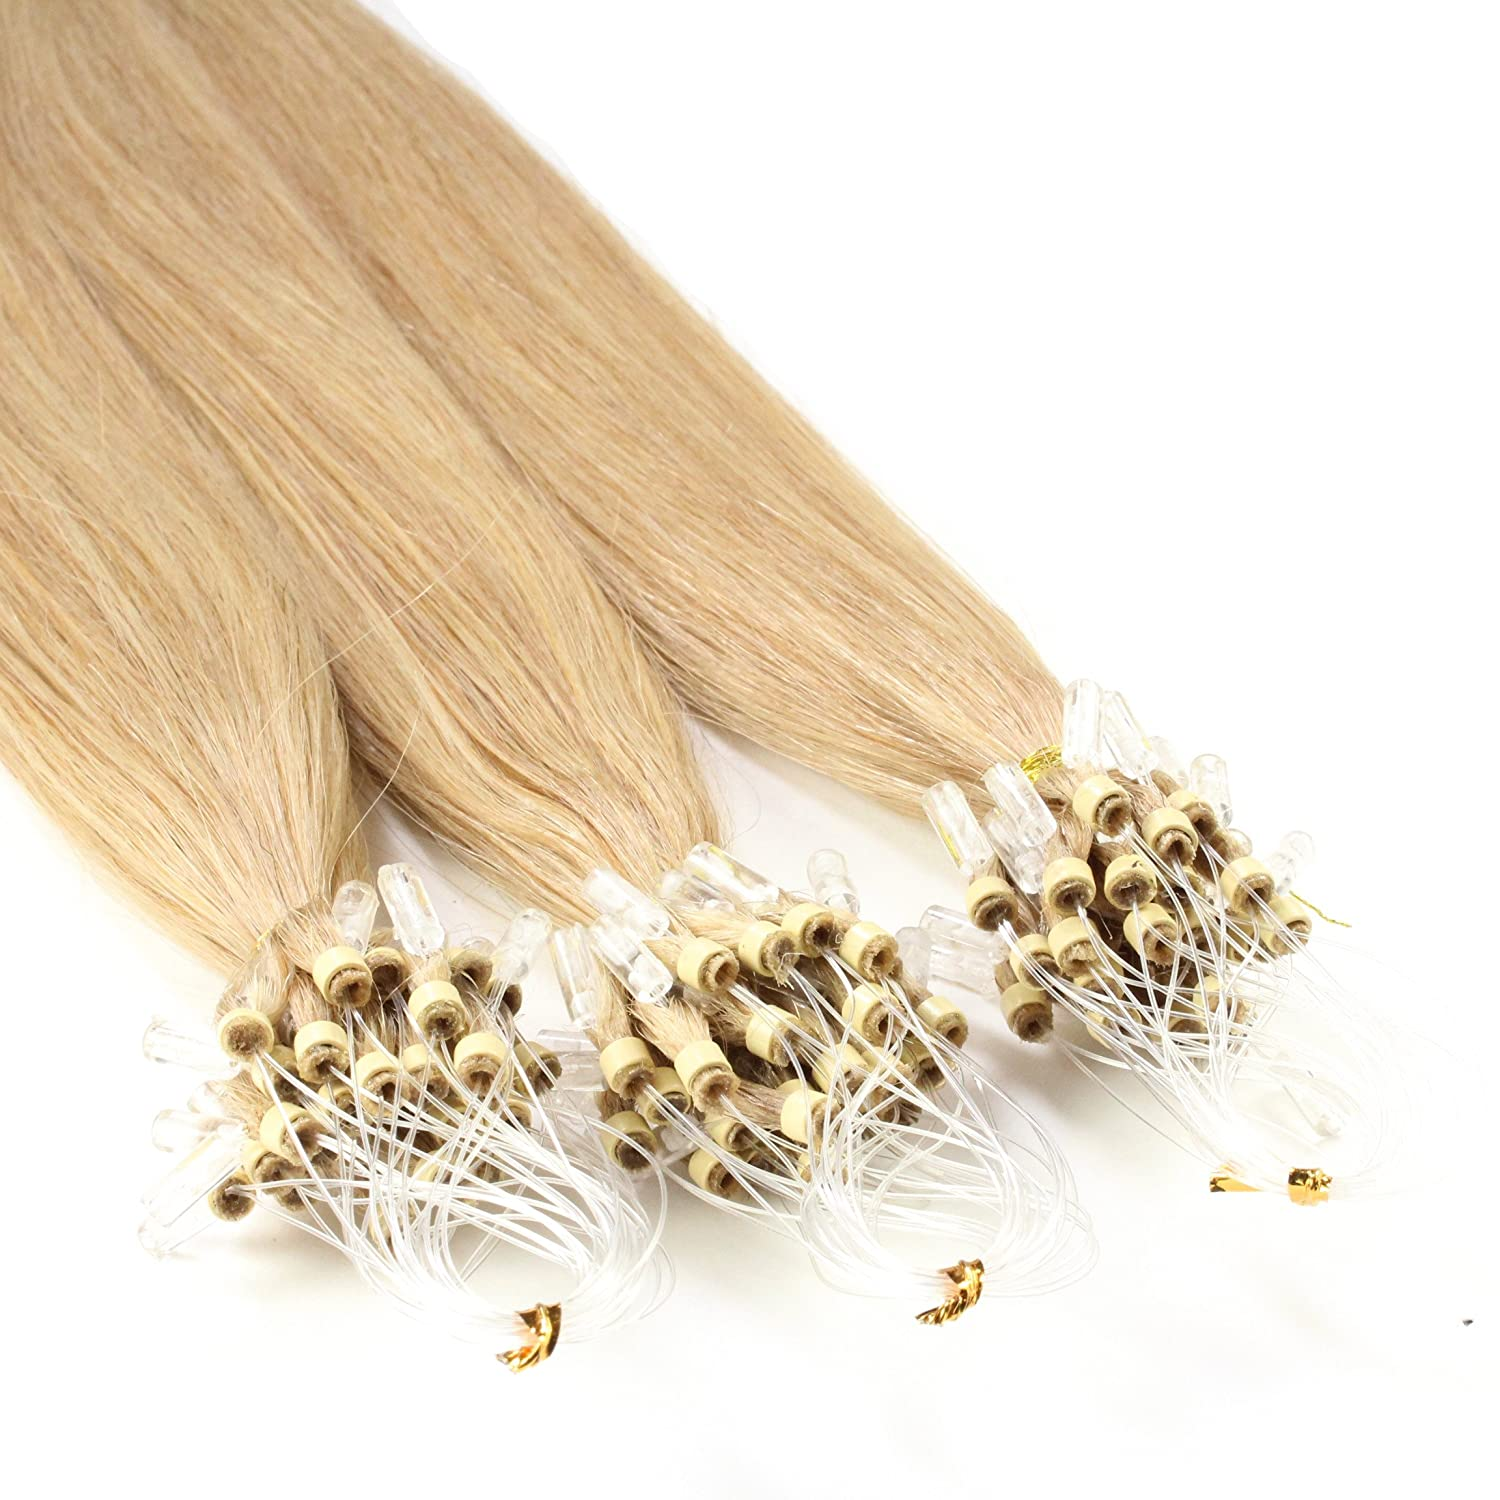 Excellent Just Beautiful Quantity limited Hair and Cosmetics Extension Micro Loop Remy